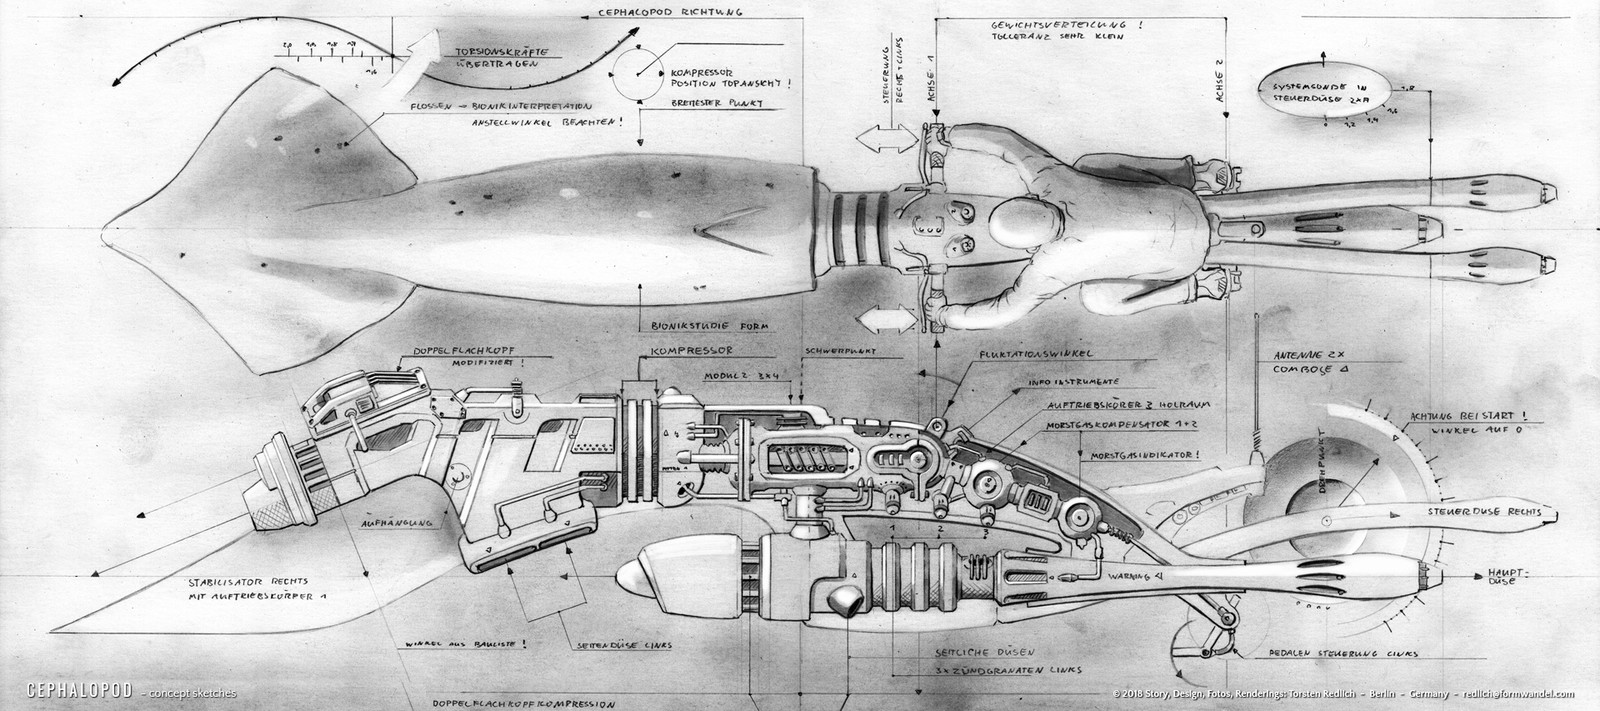 CEPHALOPOD - top secret design drawings